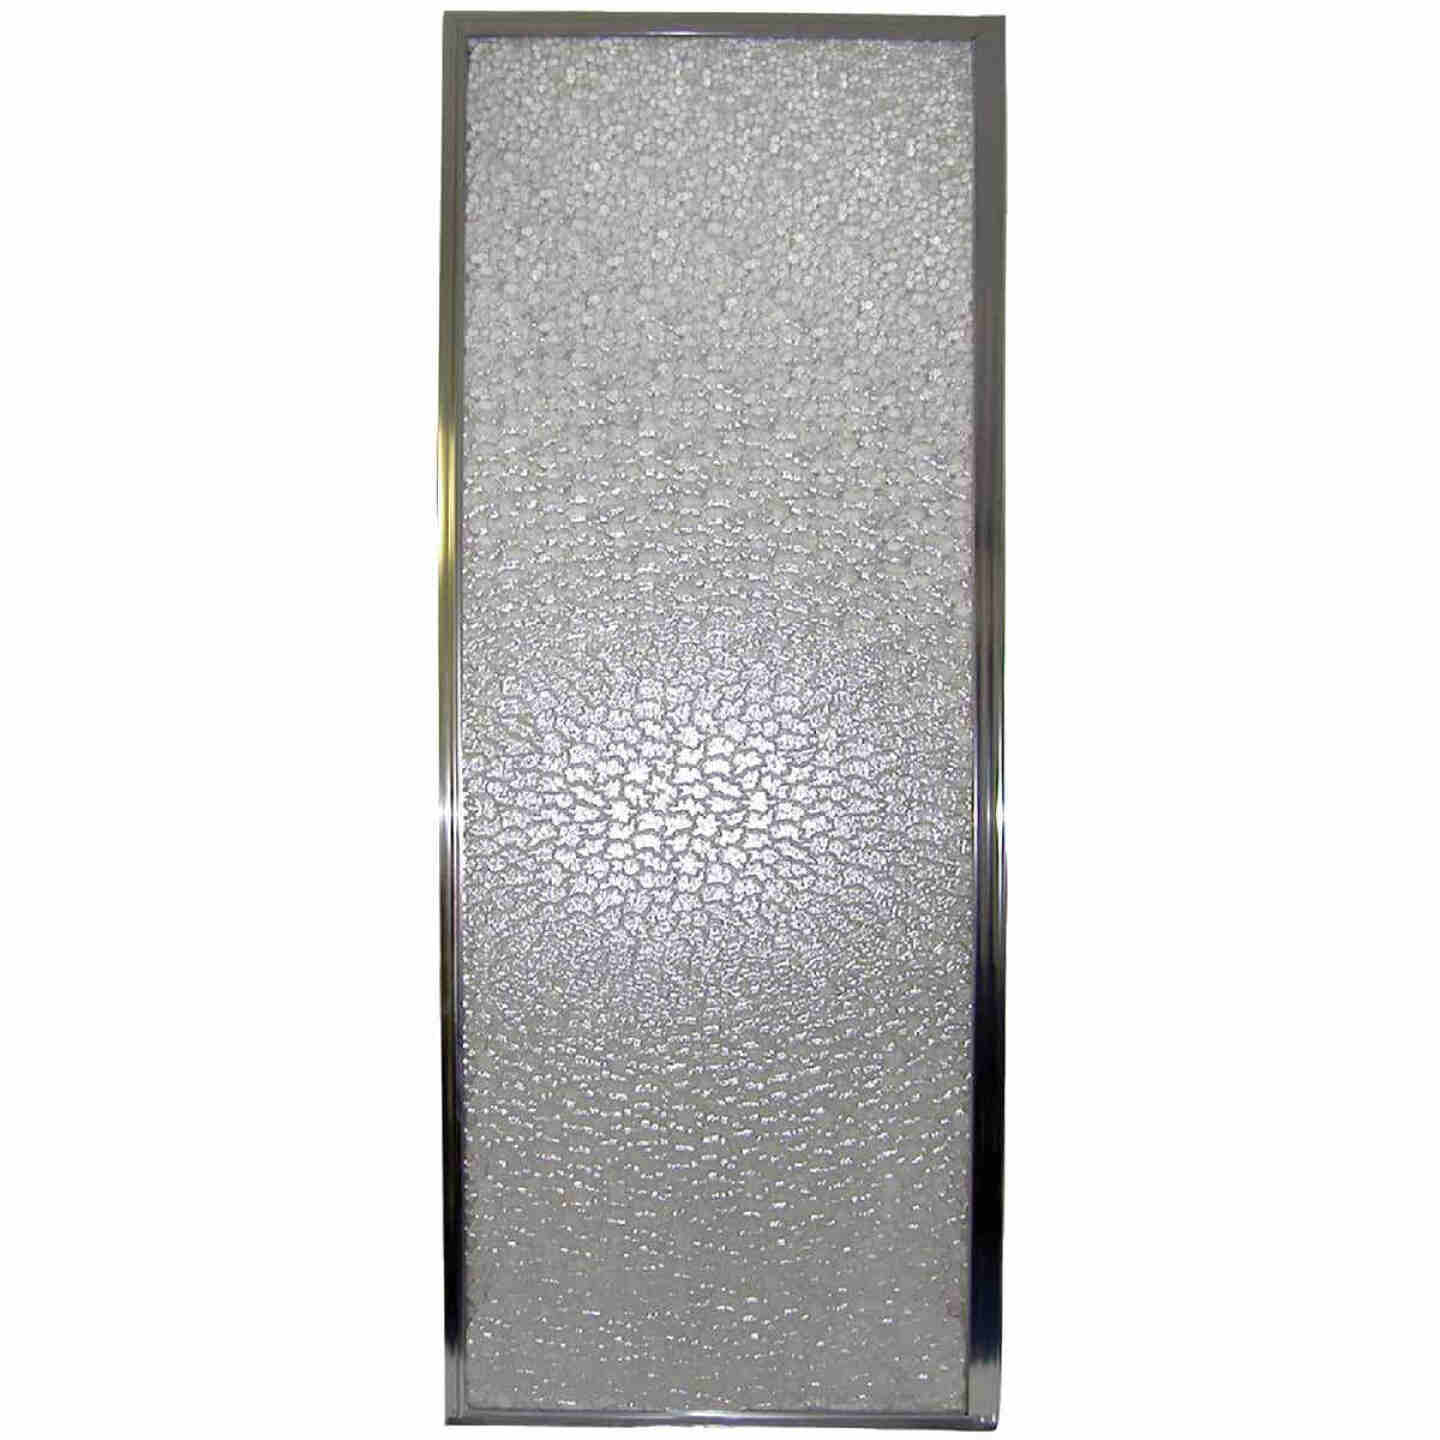 Mustee Durastall 28 In. W. X 64 In. H. Chrome Opaque Glass Hinged Shower Door Image 1